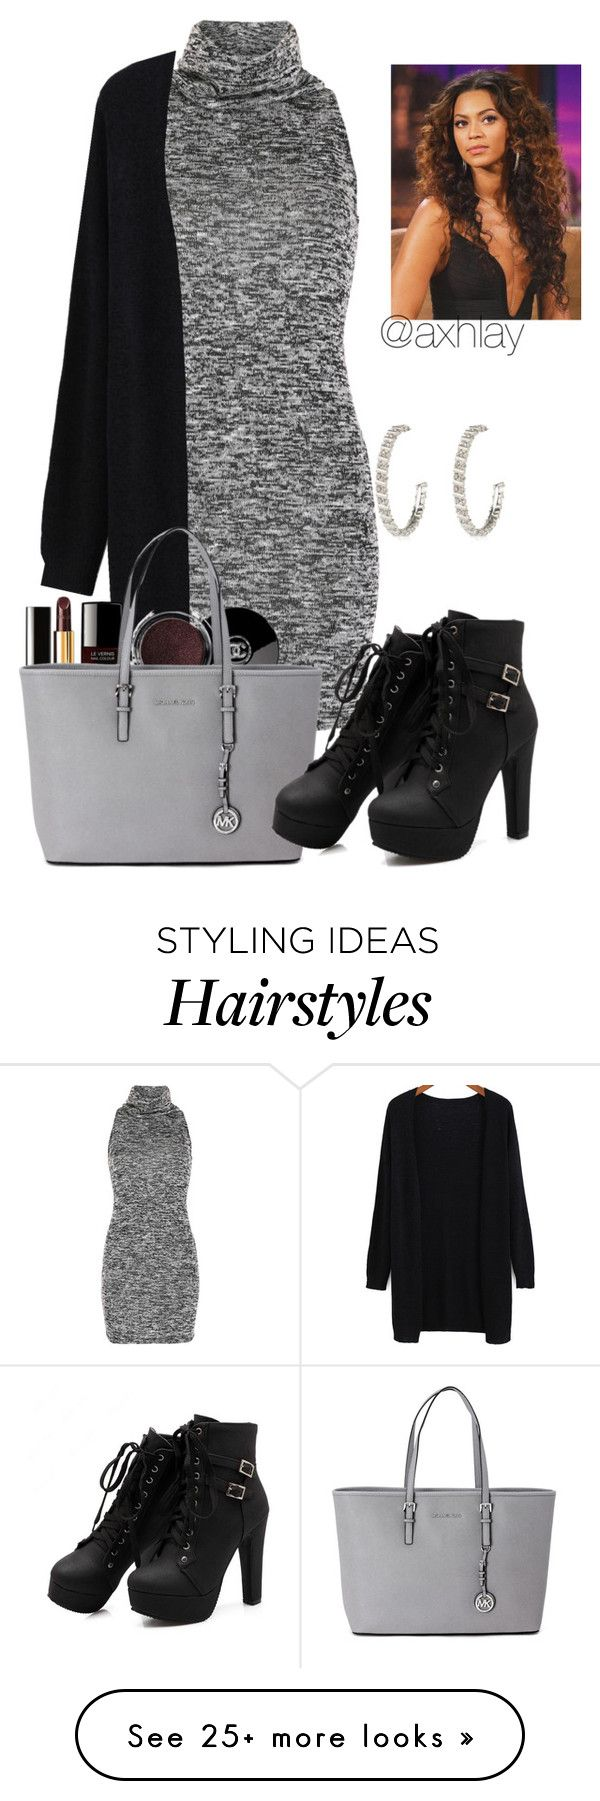 """Hair Flip"" by axhlay on Polyvore featuring Voulez Vous, Chanel, Michael Kors and River Island"